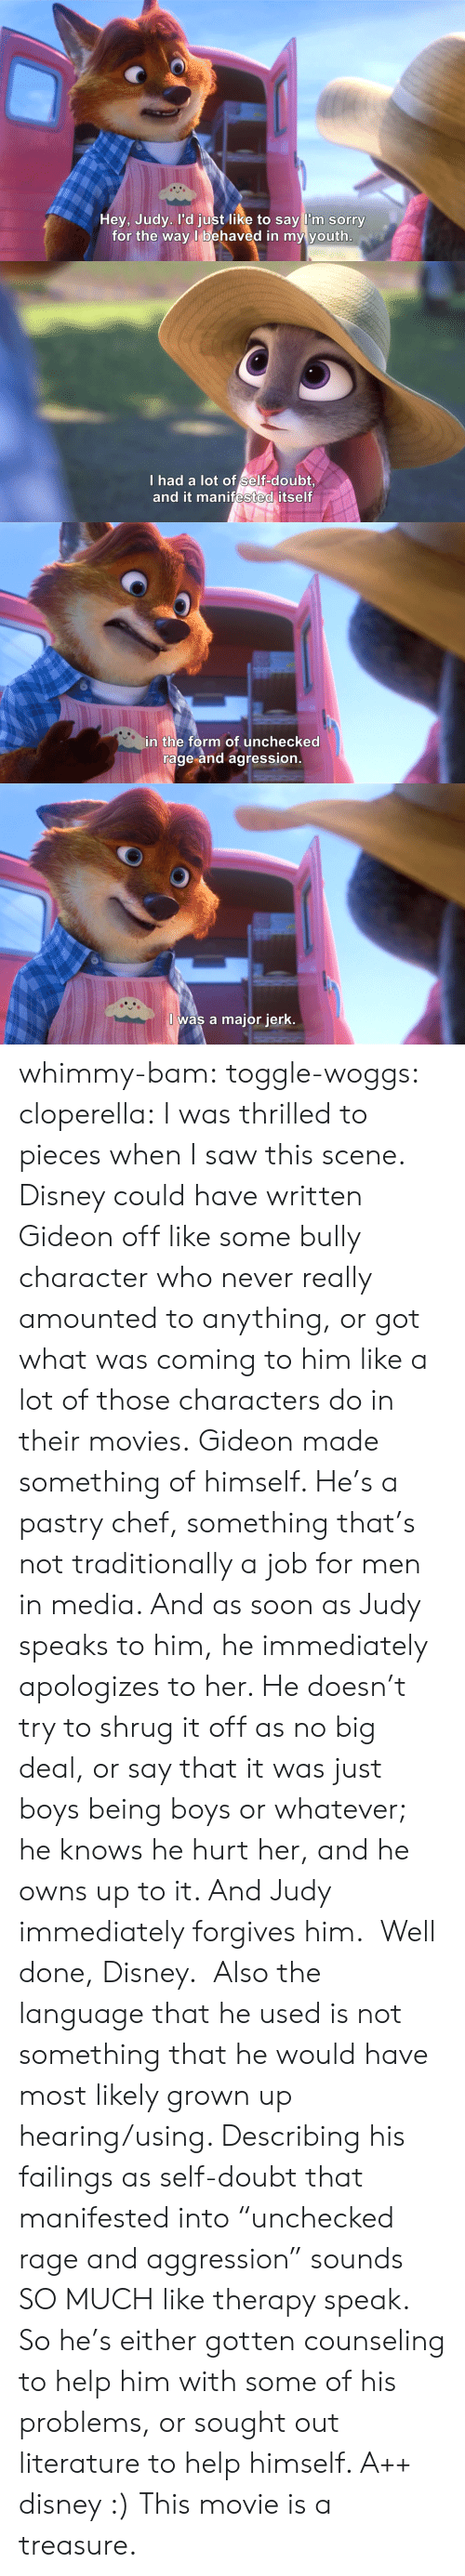 "Disney, Movies, and Saw: Hey, Judy. l'd just like to say l'm sorry  for the way l behaved in my youth   I had a lot of self-doubt  and it manifested itself   in the form of unchecked  rage and agression   I was a major jerk. whimmy-bam: toggle-woggs:  cloperella:  I was thrilled to pieces when I saw this scene. Disney could have written Gideon off like some bully character who never really amounted to anything, or got what was coming to him like a lot of those characters do in their movies. Gideon made something of himself. He's a pastry chef, something that's not traditionally a job for men in media. And as soon as Judy speaks to him, he immediately apologizes to her. He doesn't try to shrug it off as no big deal, or say that it was just boys being boys or whatever; he knows he hurt her, and he owns up to it. And Judy immediately forgives him.  Well done, Disney.   Also the language that he used is not something that he would have most likely grown up hearing/using. Describing his failings as self-doubt that manifested into ""unchecked rage and aggression"" sounds SO MUCH like therapy speak. So he's either gotten counseling to help him with some of his problems, or sought out literature to help himself. A++ disney :)  This movie is a treasure."